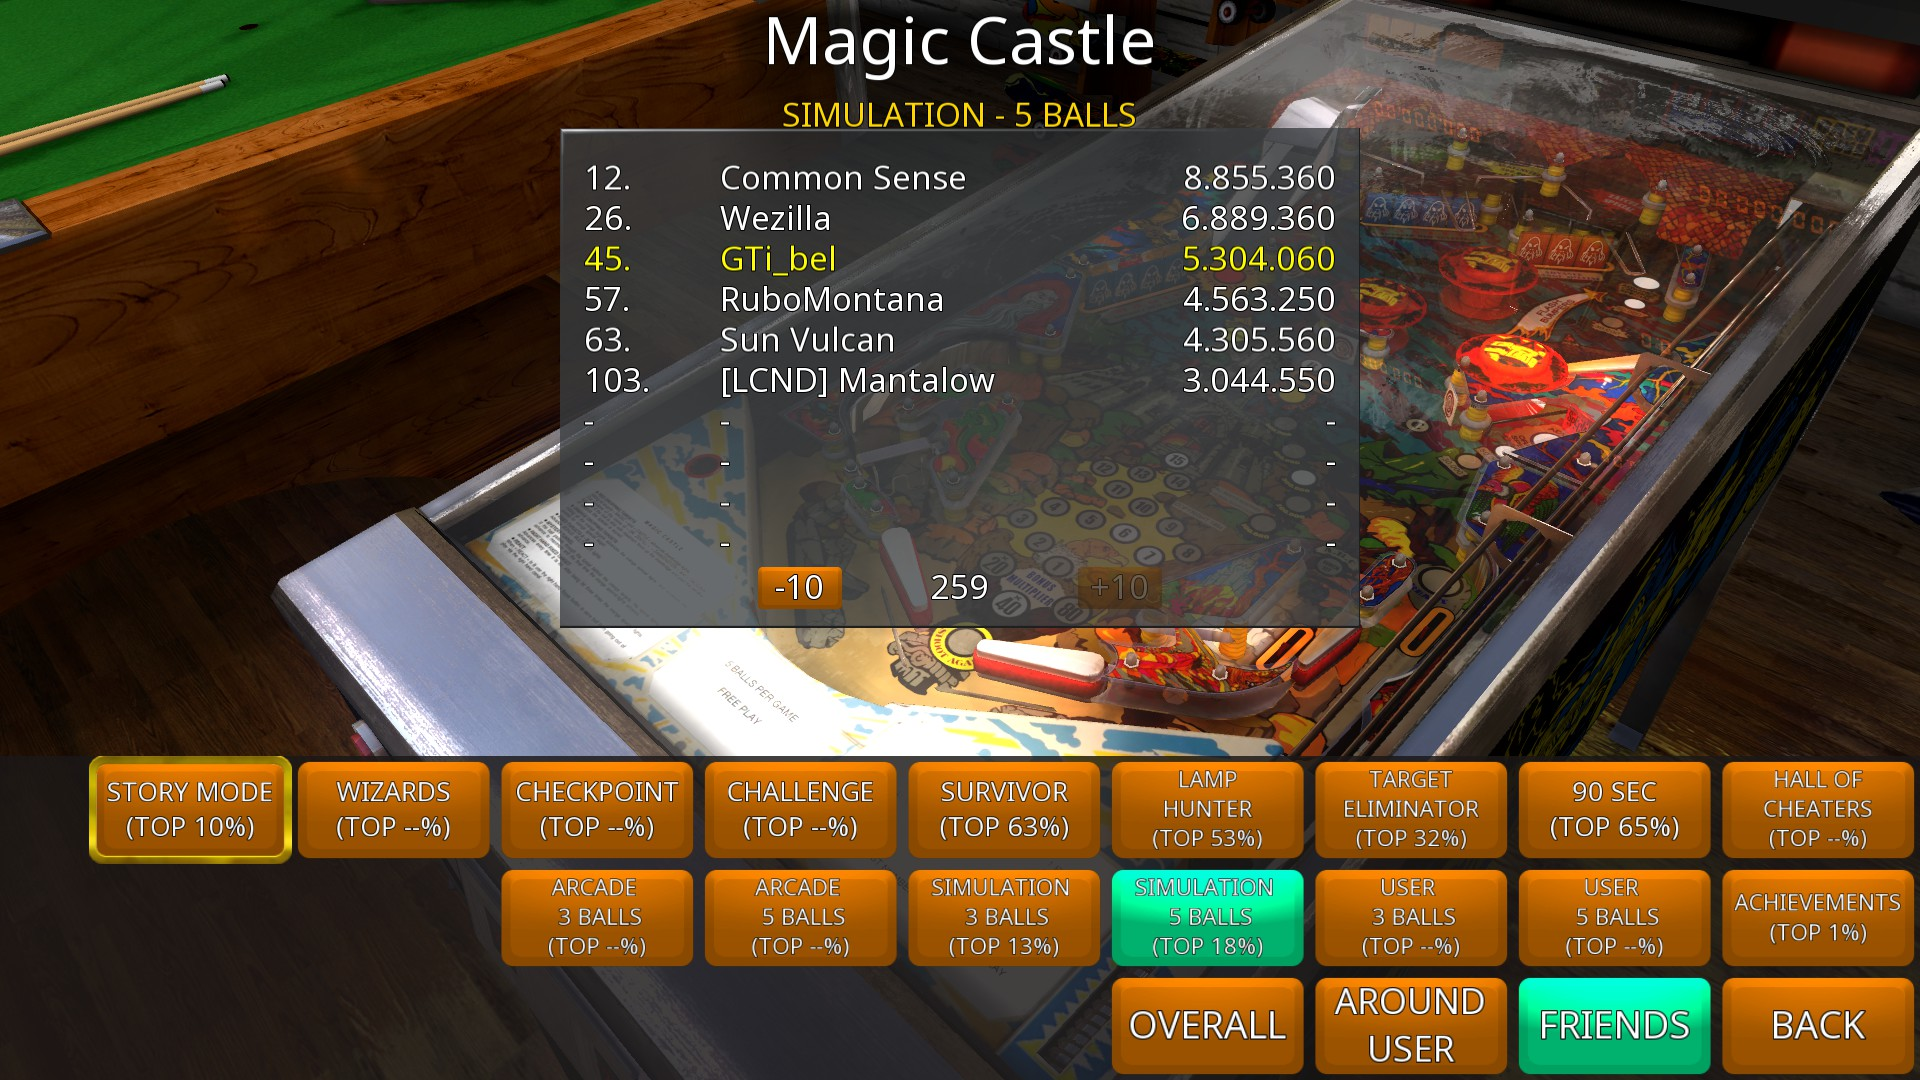 GTibel: Zaccaria Pinball: Magic Castle [5 balls] (PC) 5,304,060 points on 2018-09-02 08:58:35